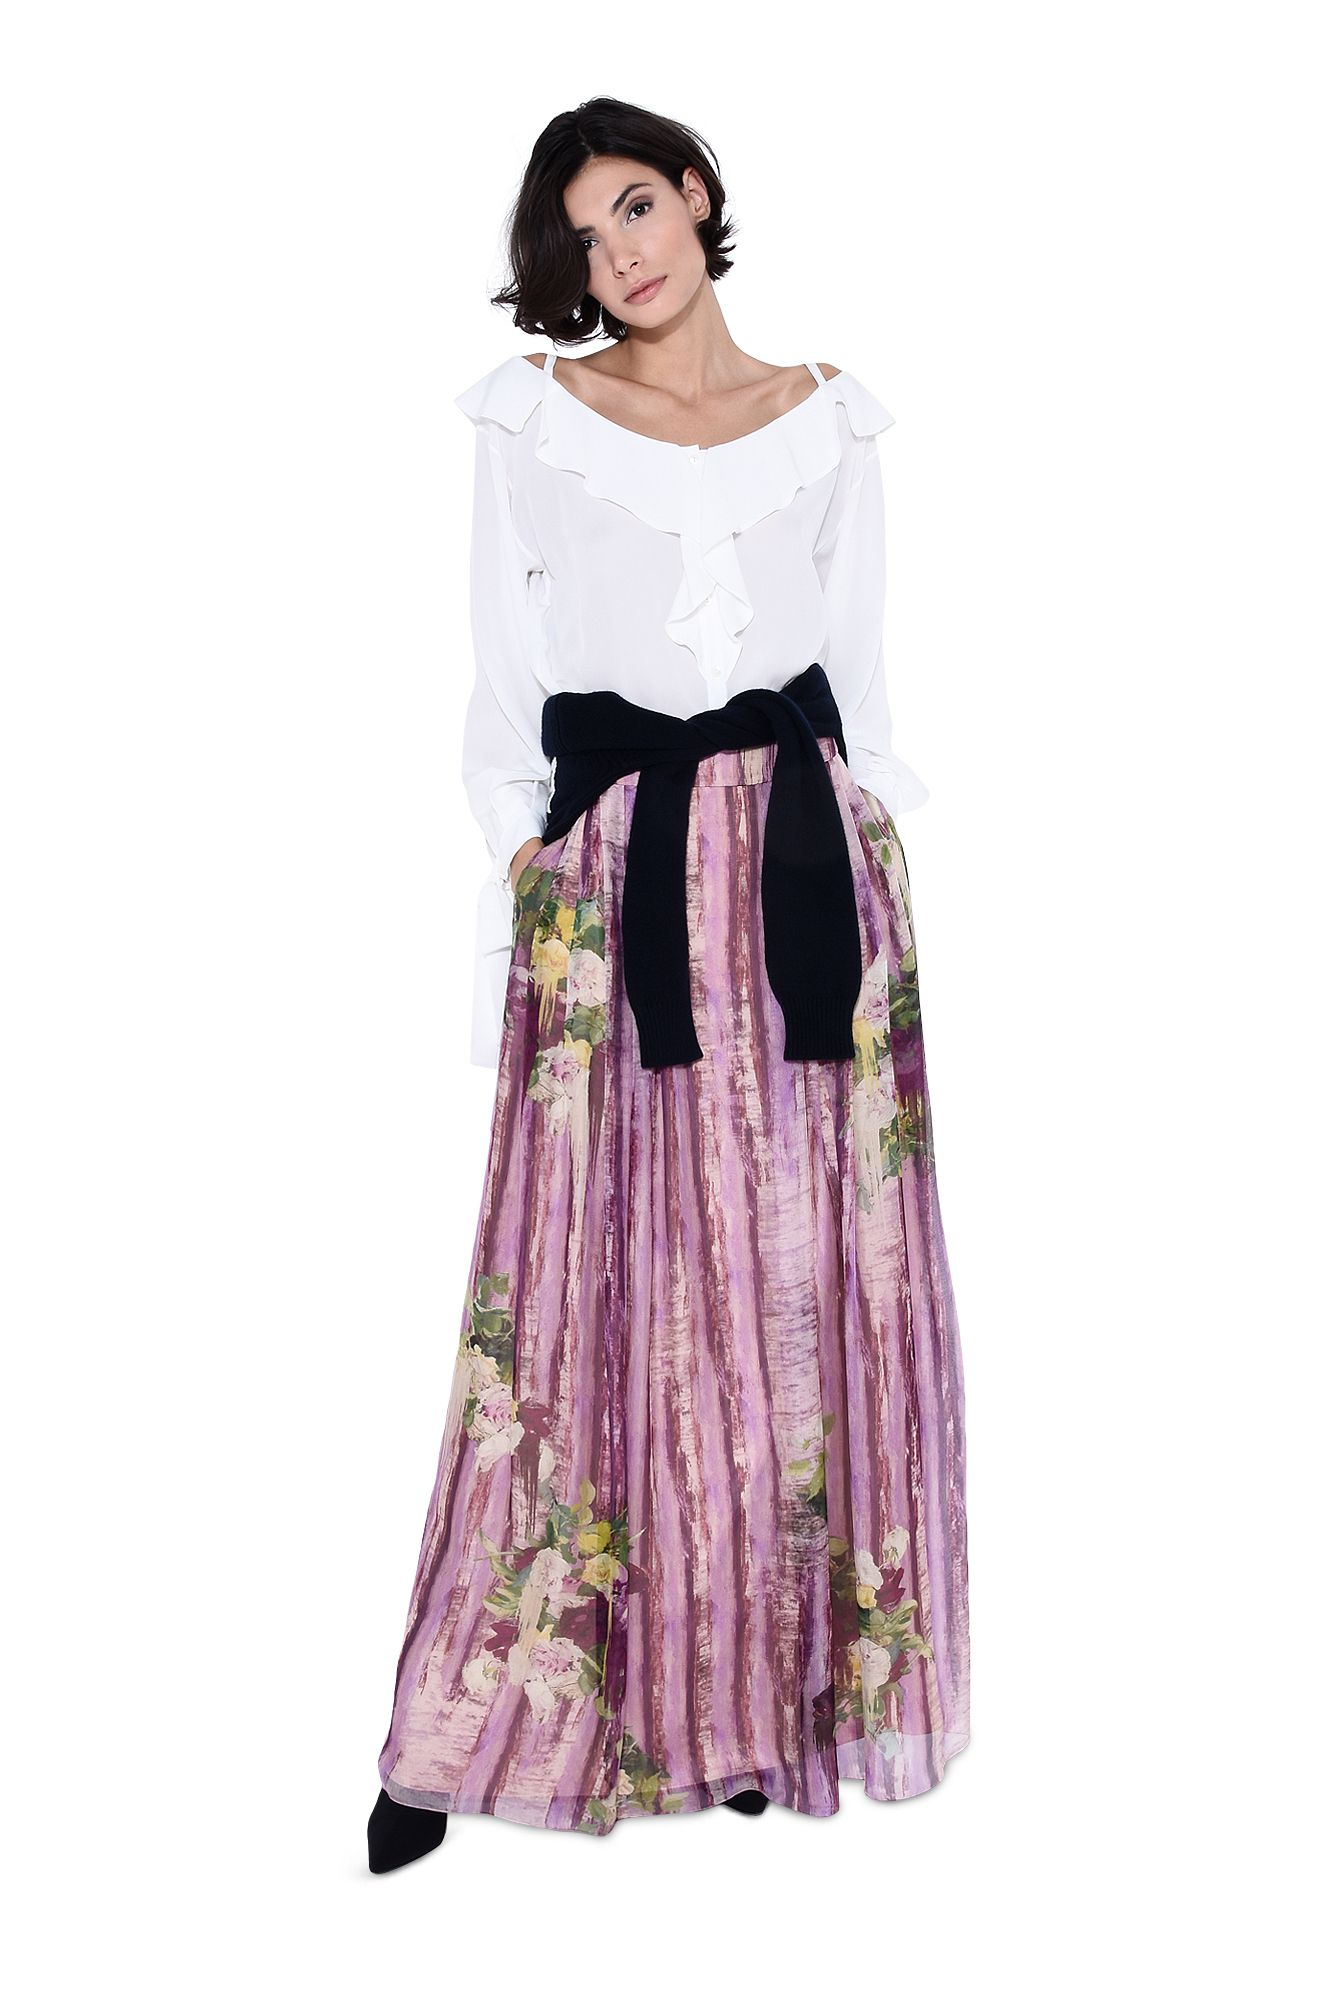 Long skirt with floral motif